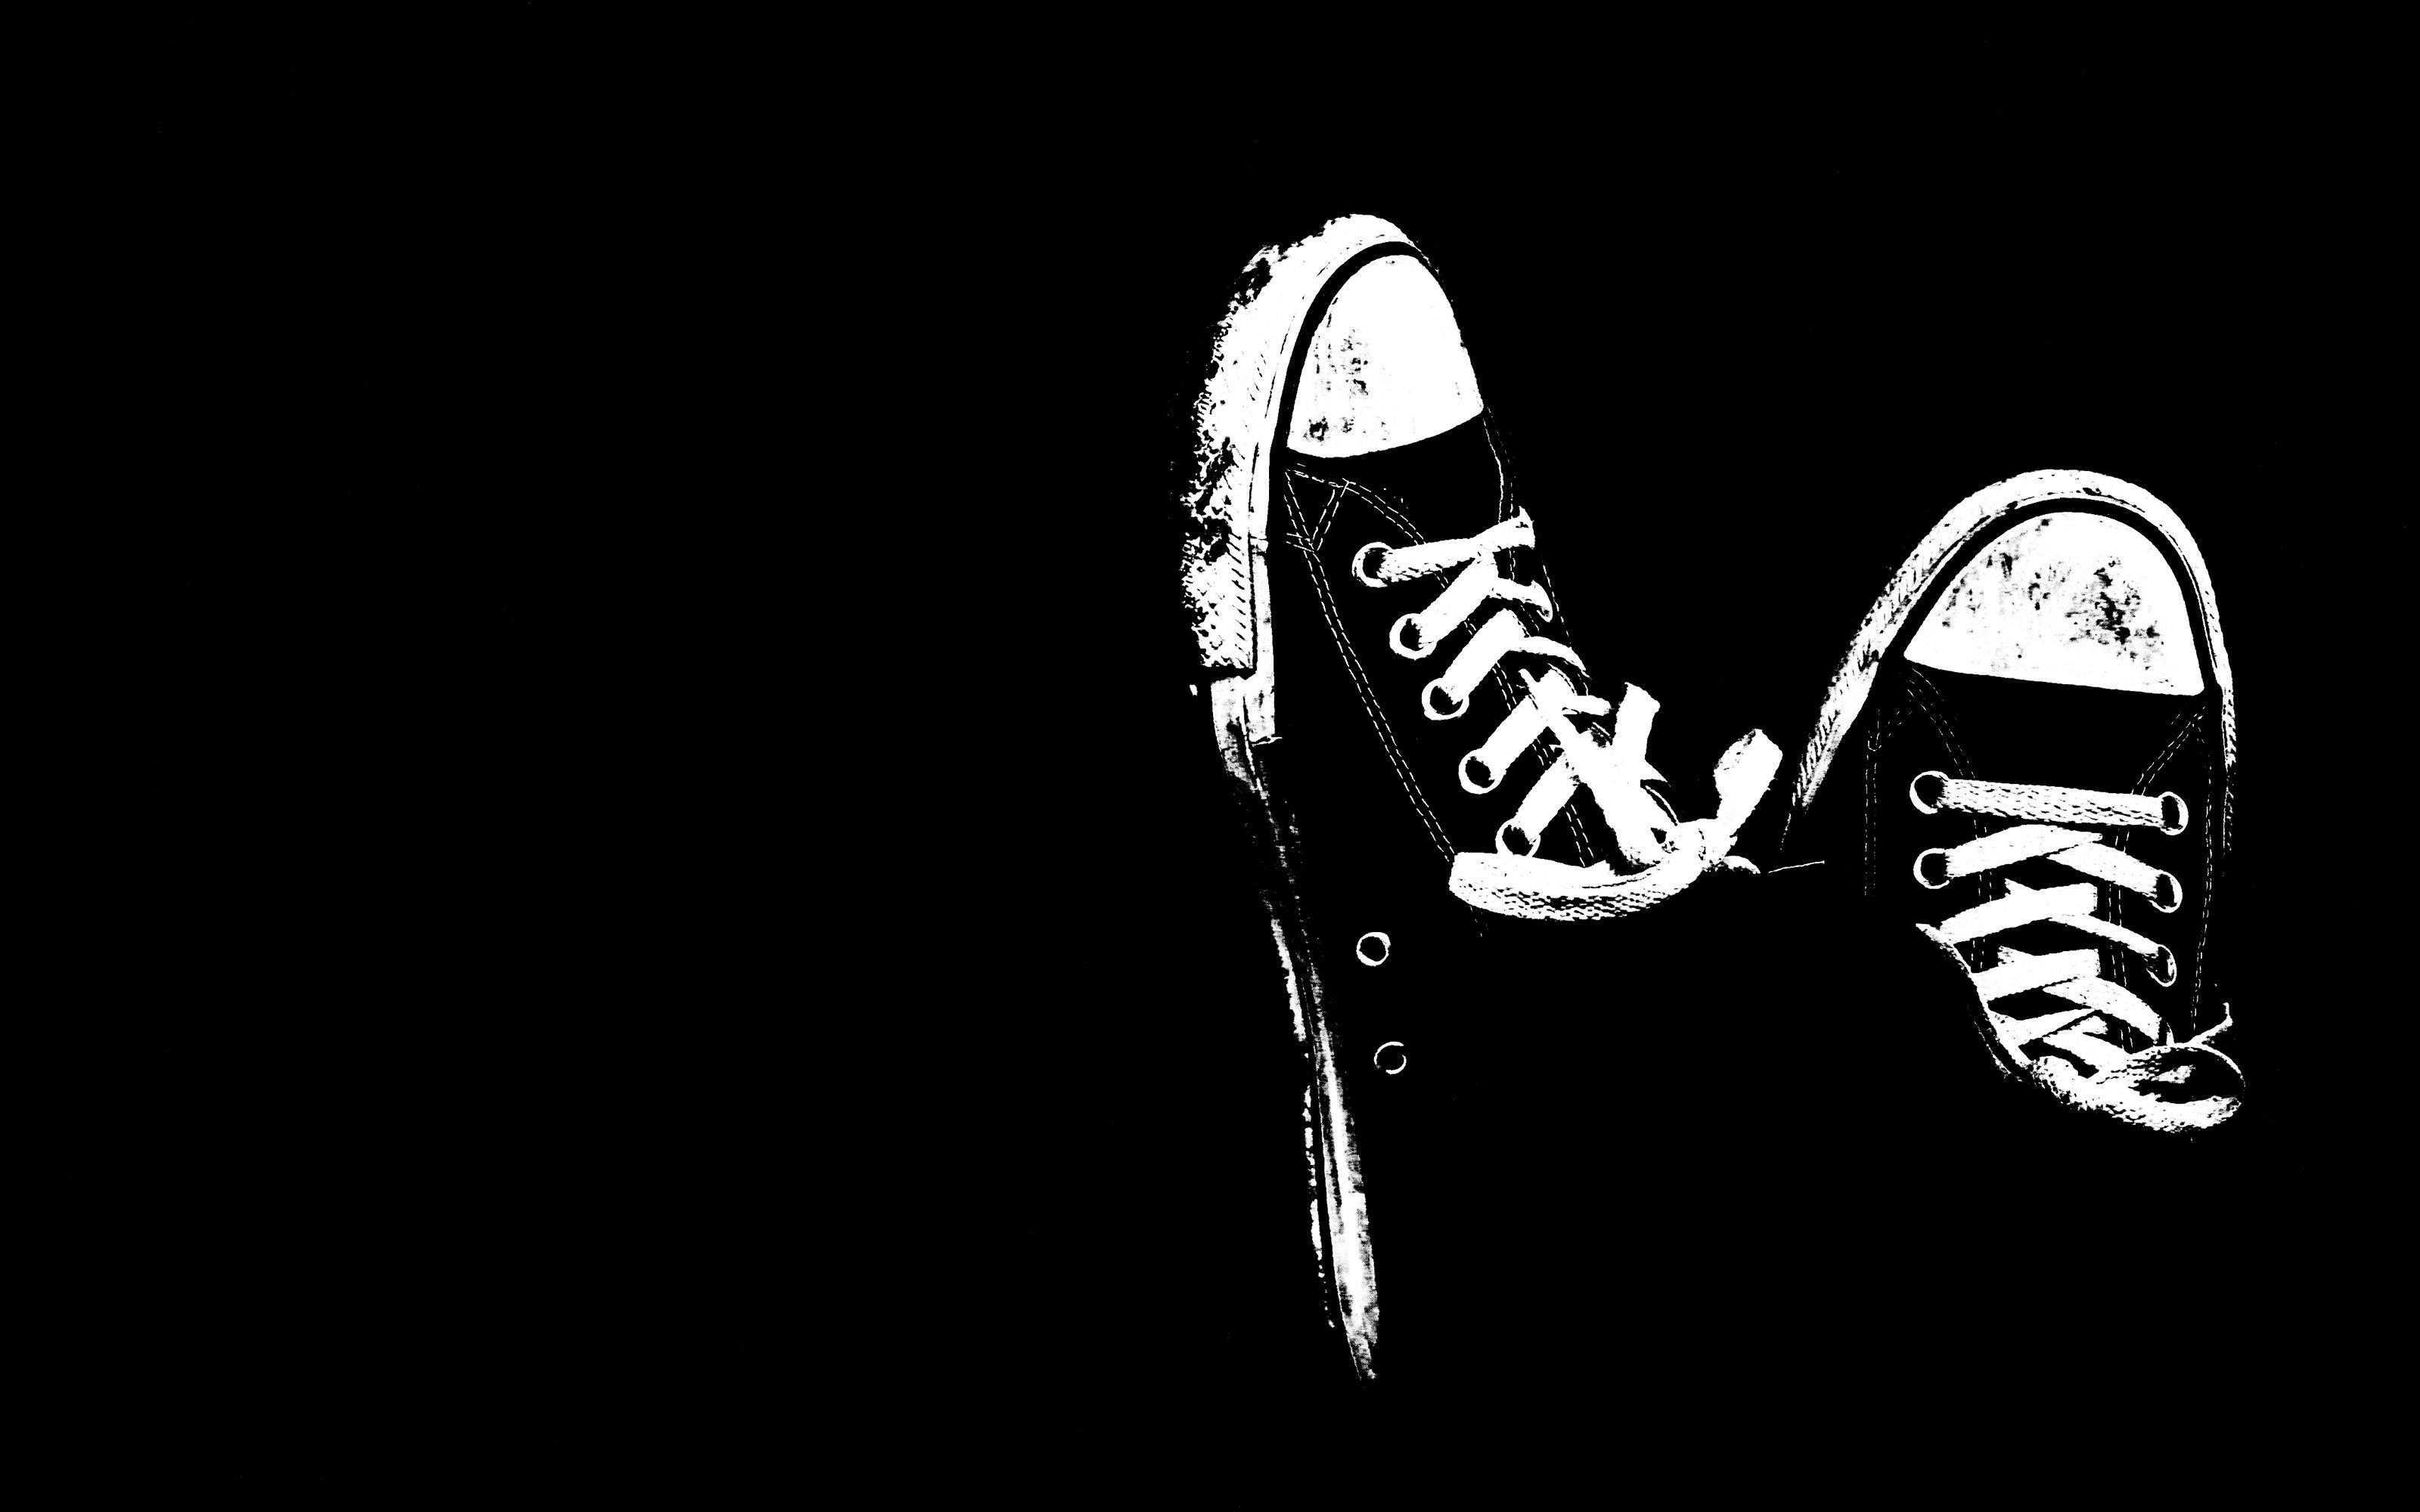 Download Cool Hd Wallpaper For Pc Black Hd Wallpaper Black And White Shoes Shoes Wallpaper